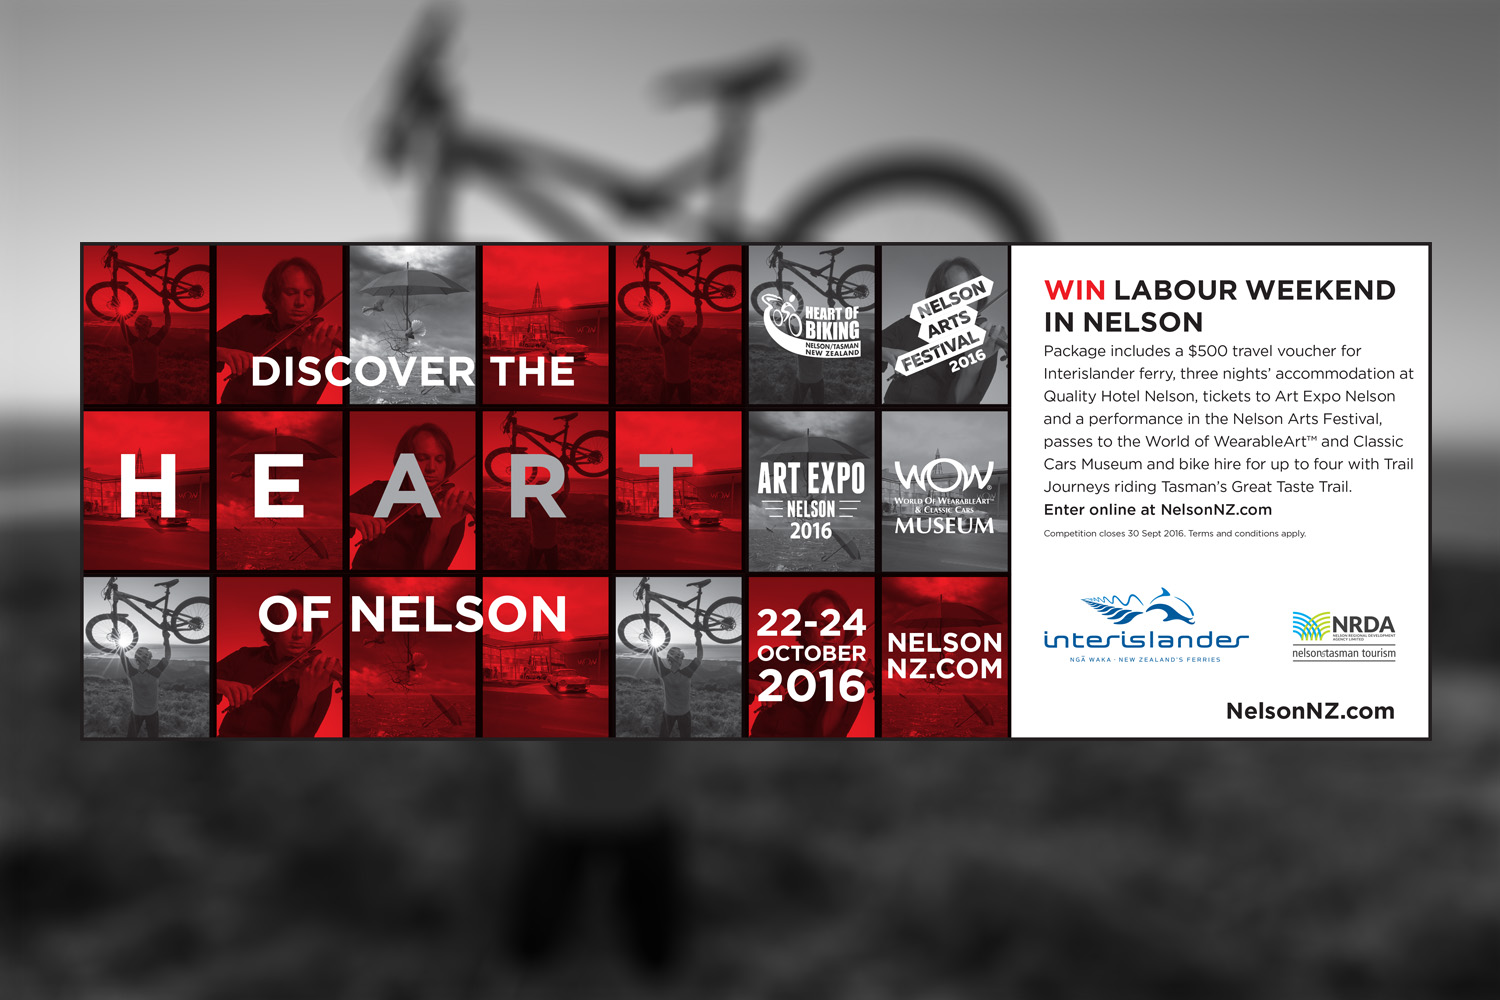 Heart of nelson Ad Design